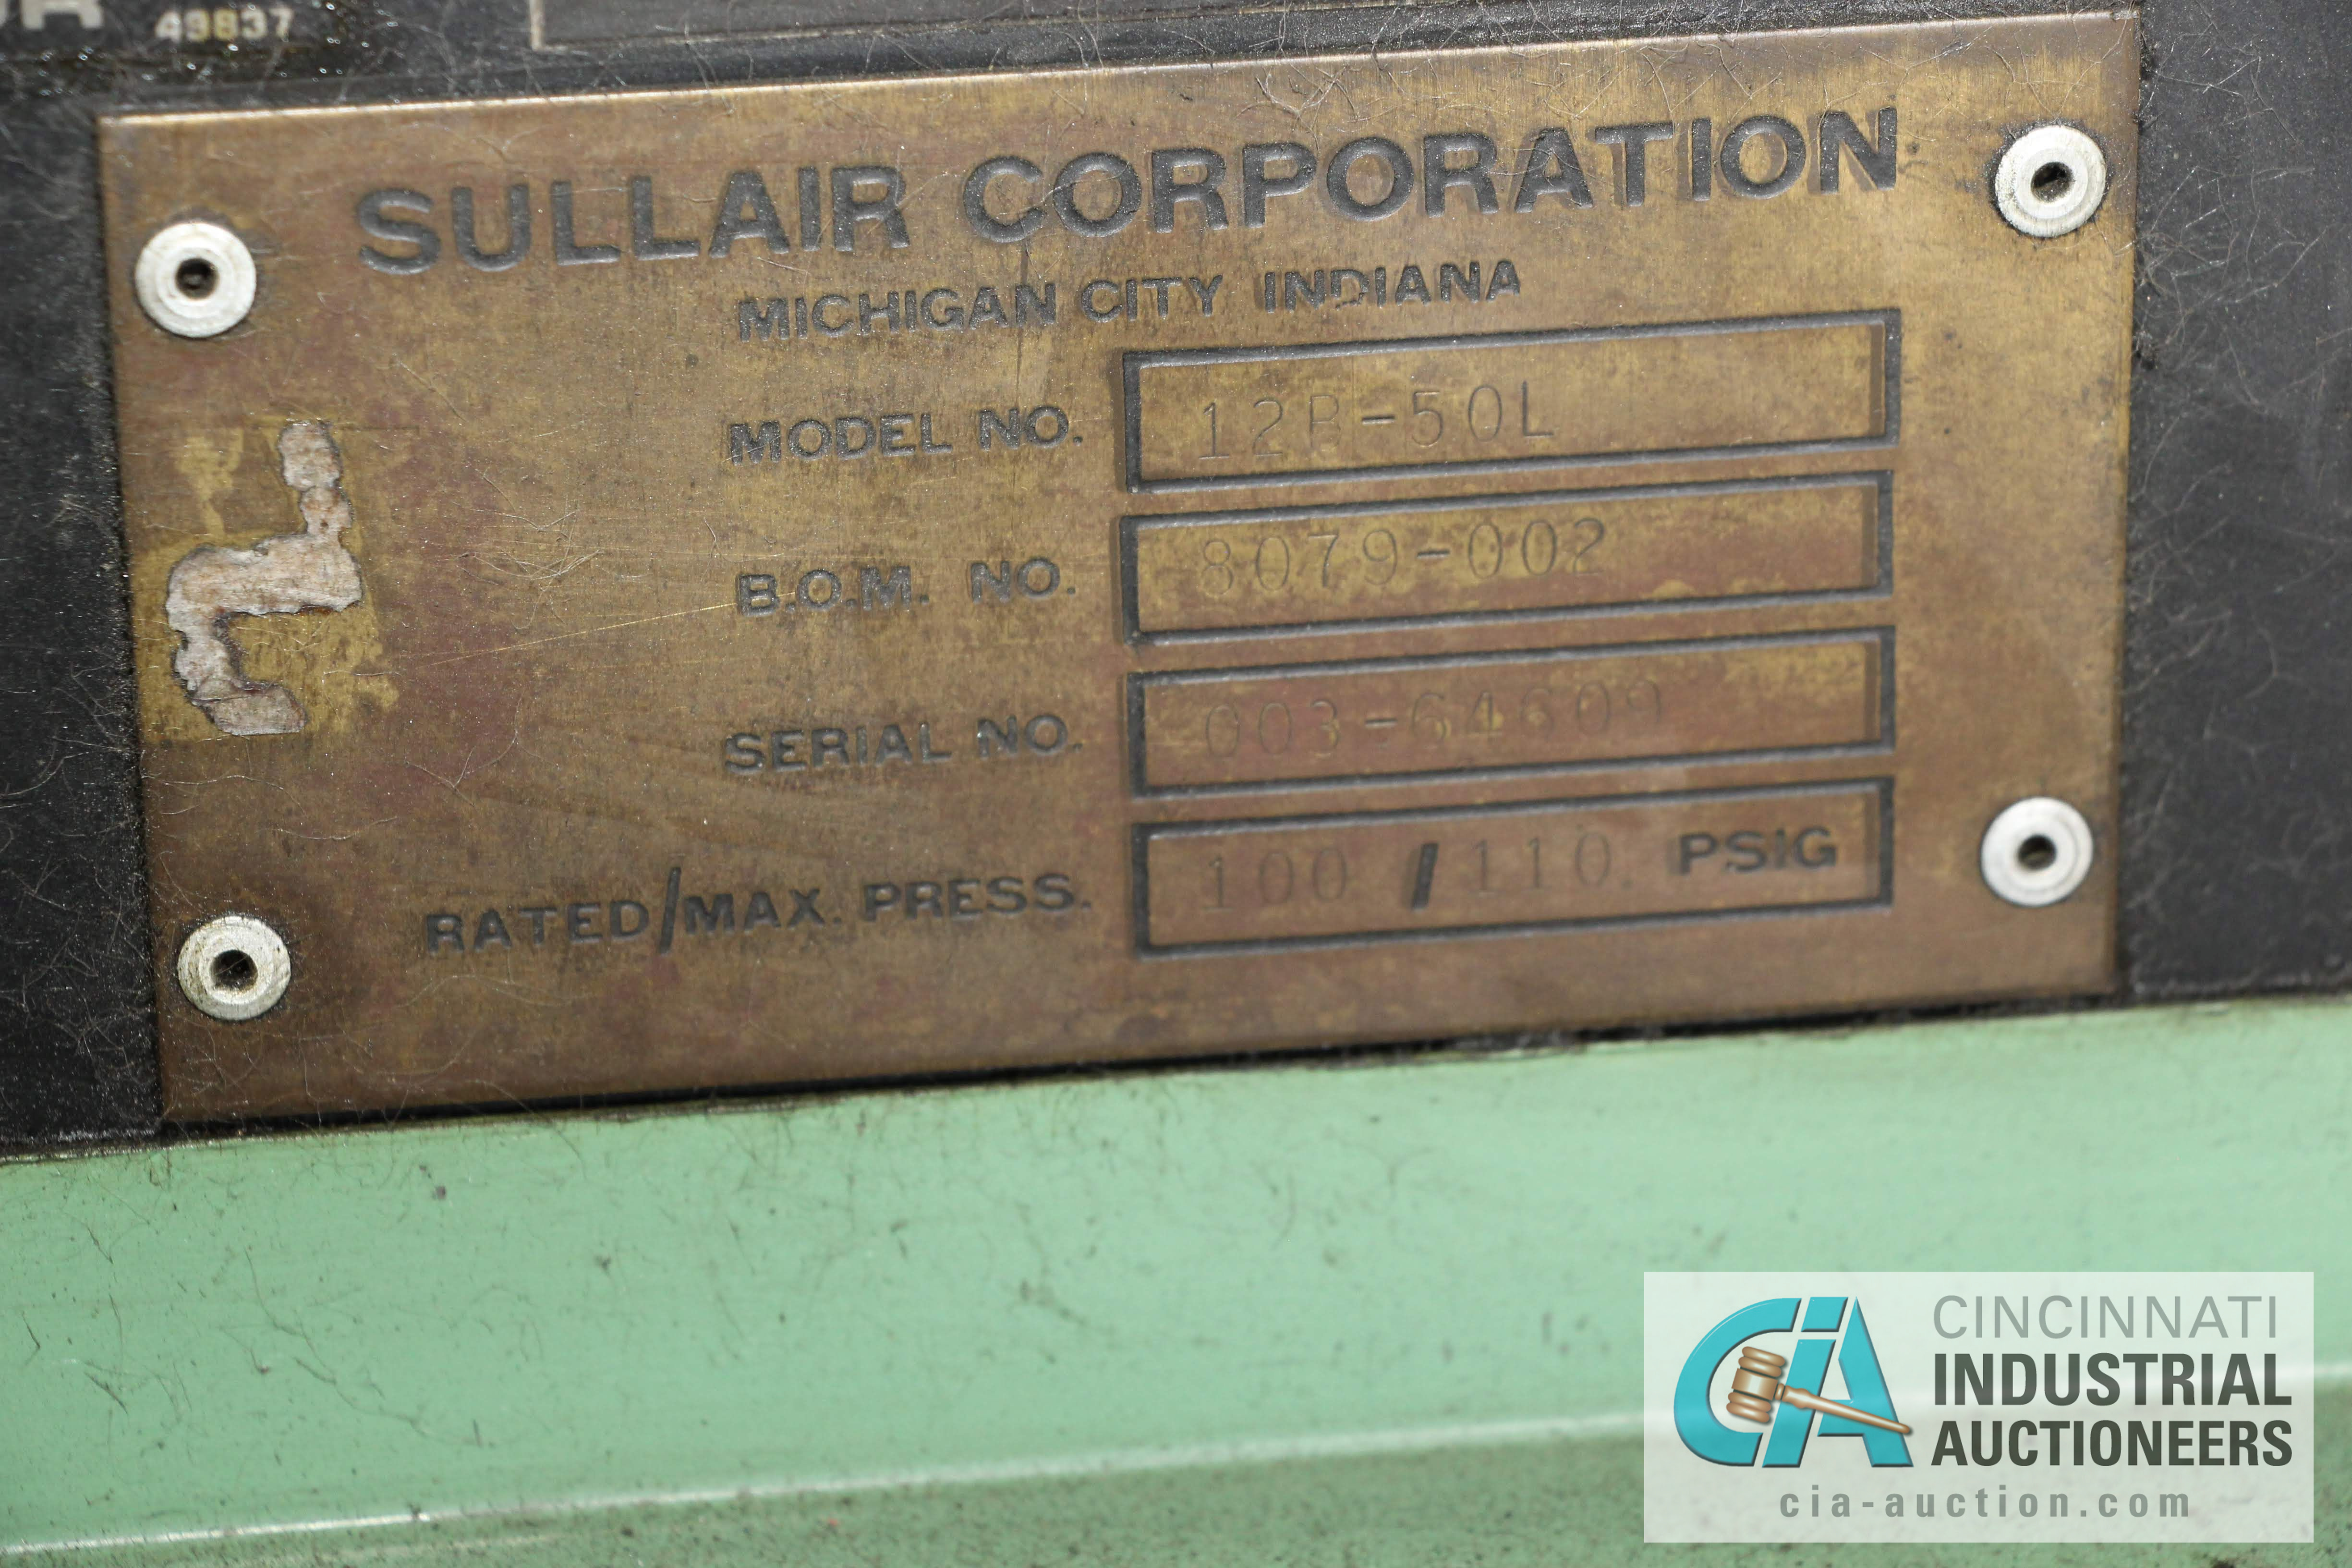 50 HP SULLAIR MODEL 12B-50L ROTARY SCREW AIR COMPRESOR - $50.00 Rigging Fee Due to Onsite Rigger - - Image 2 of 3